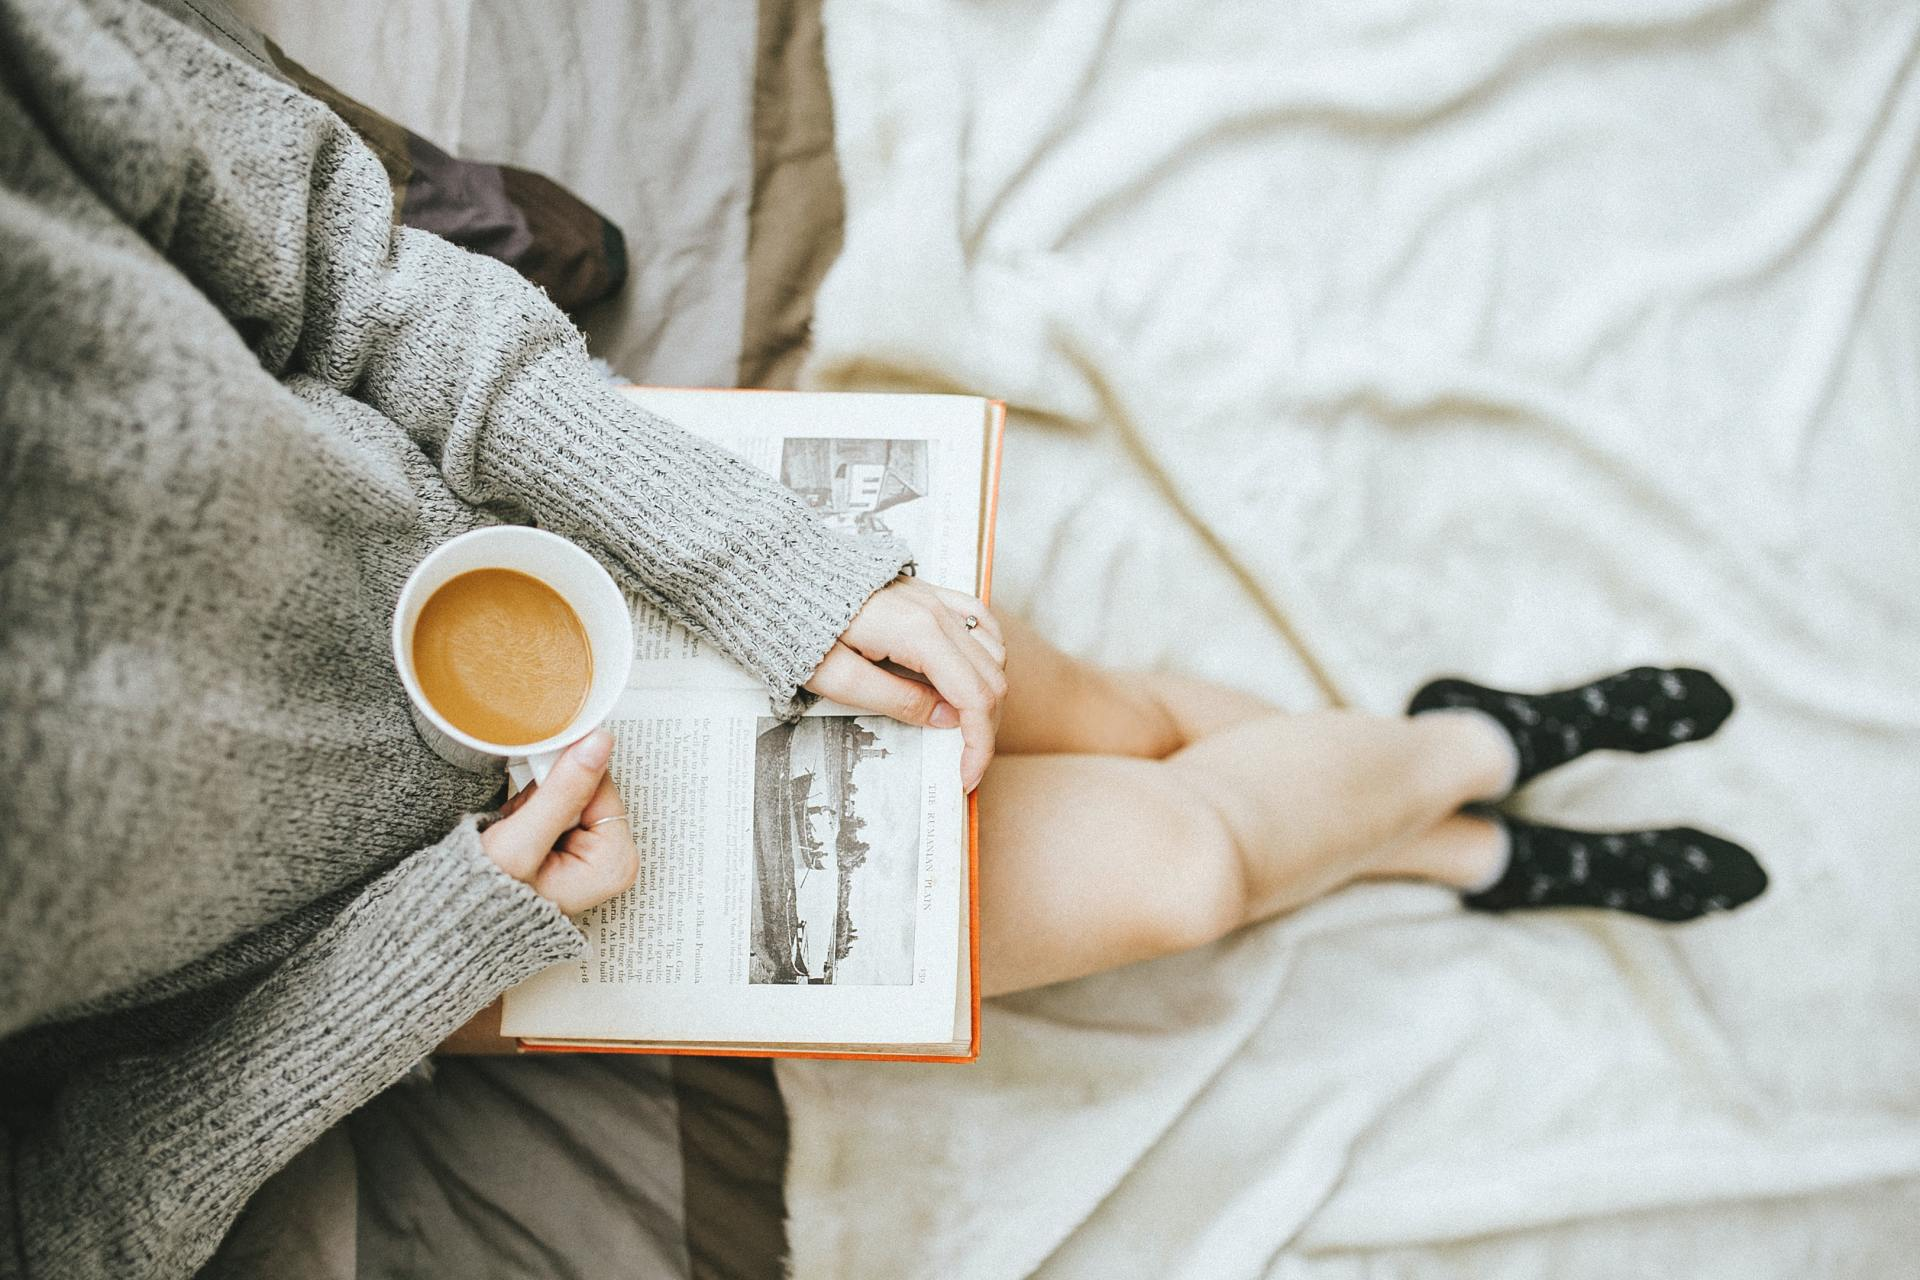 X Best Books To Read If You Haven't Picked Up A Novel Since High School